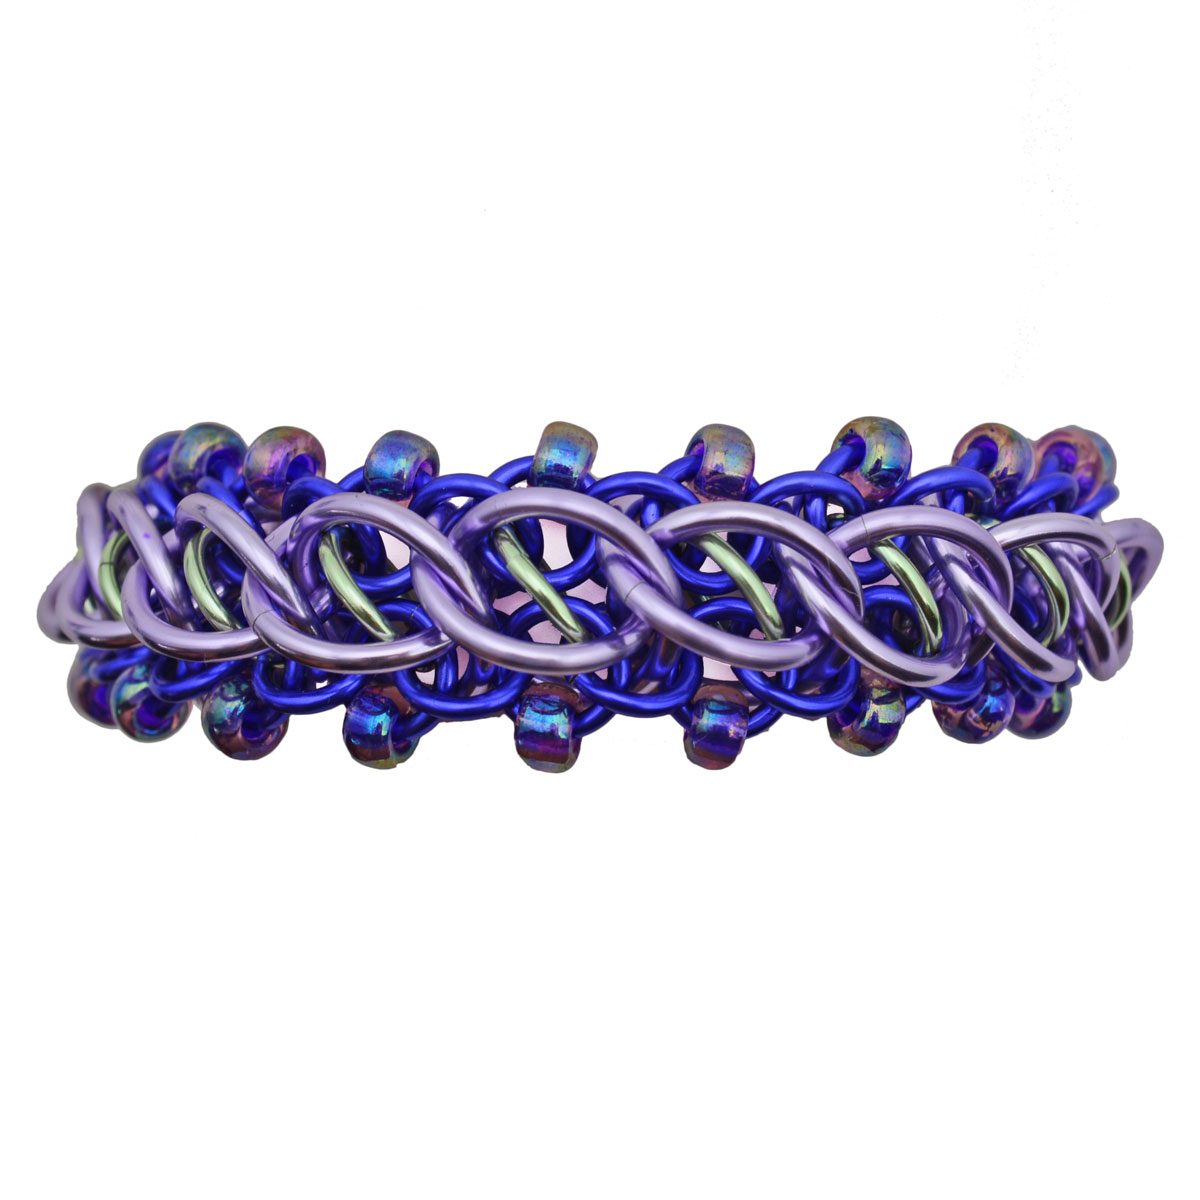 pirouette chainmaille weave by rebeca mojica in lavender seafoam and purple